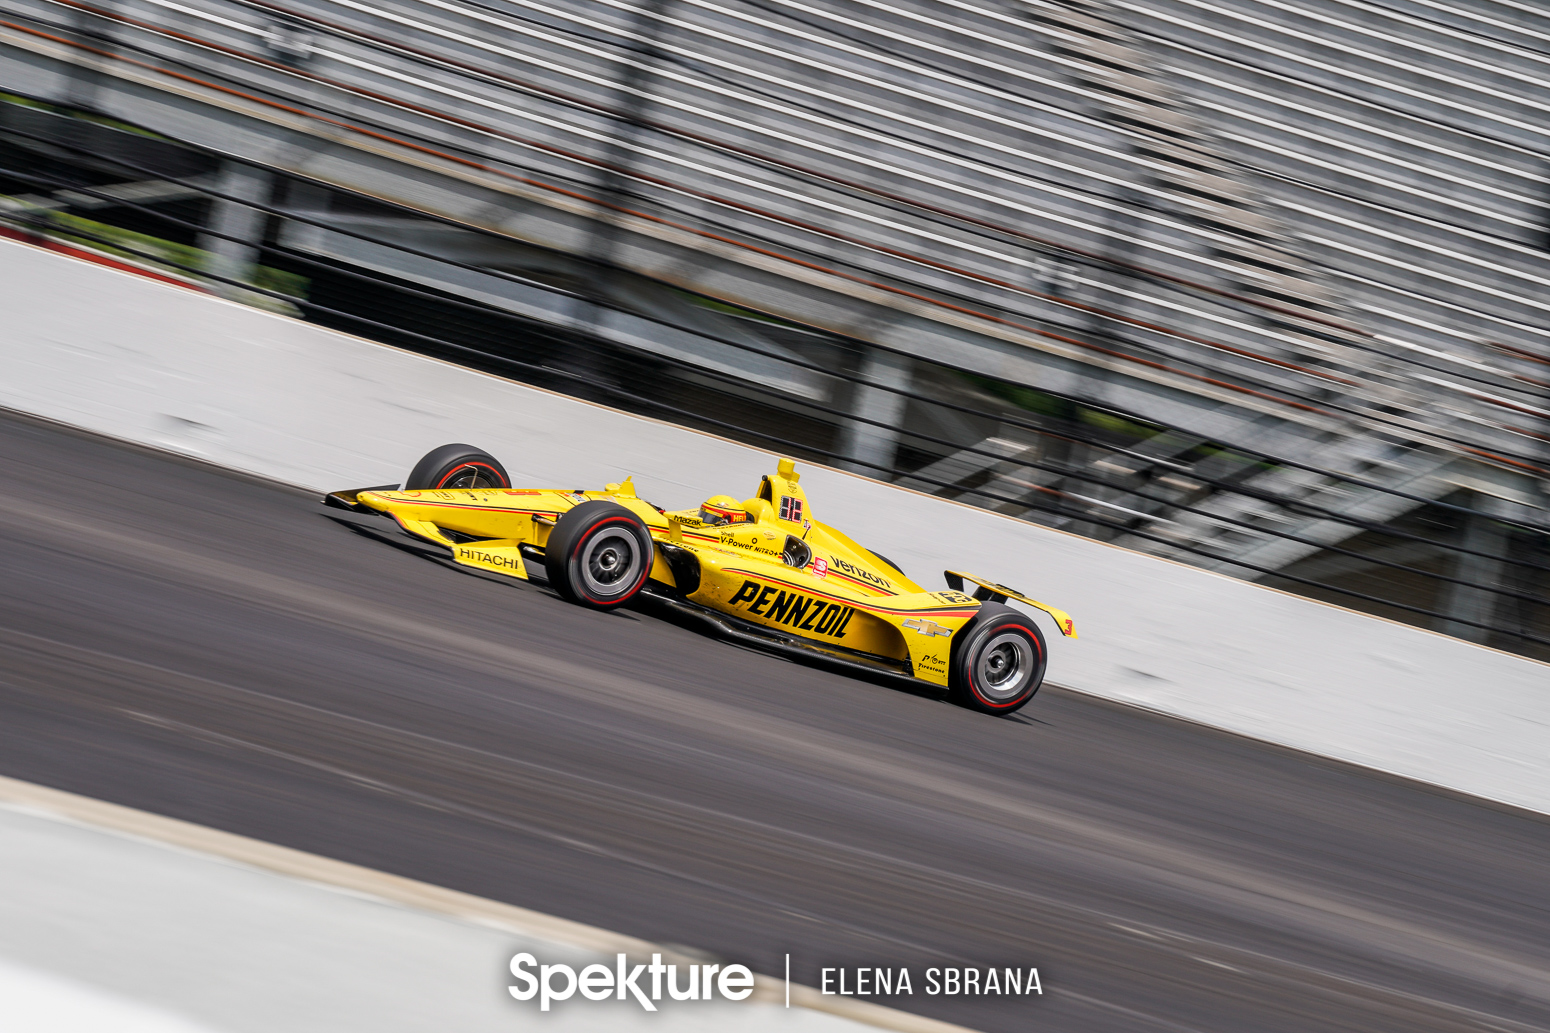 Earchphoto Sports - Helio Castroneves on track